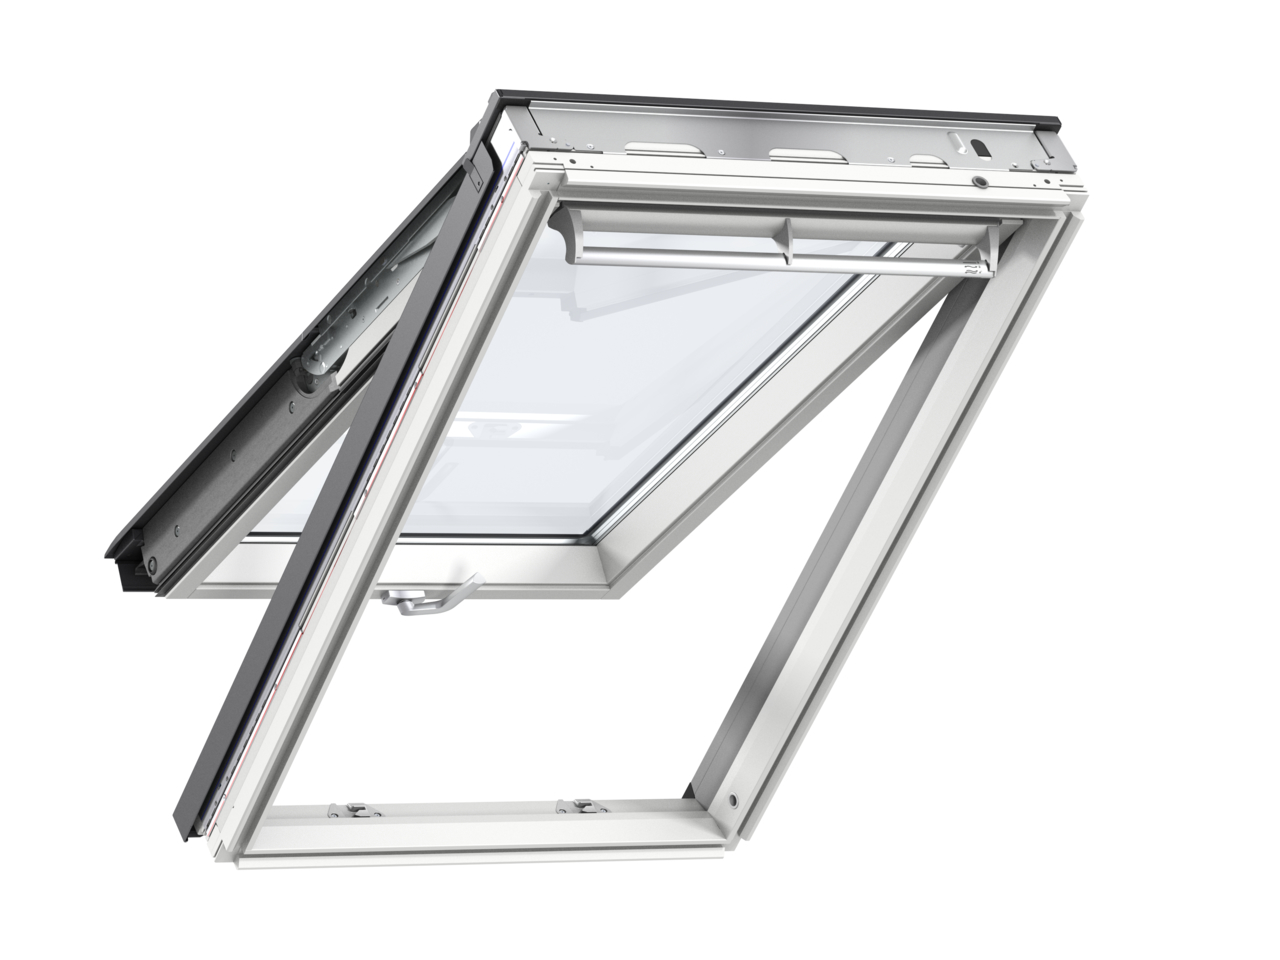 Velux GPL MK04 780 x 980mm Top Hung Standard 70Pane Roof Window - White Painted